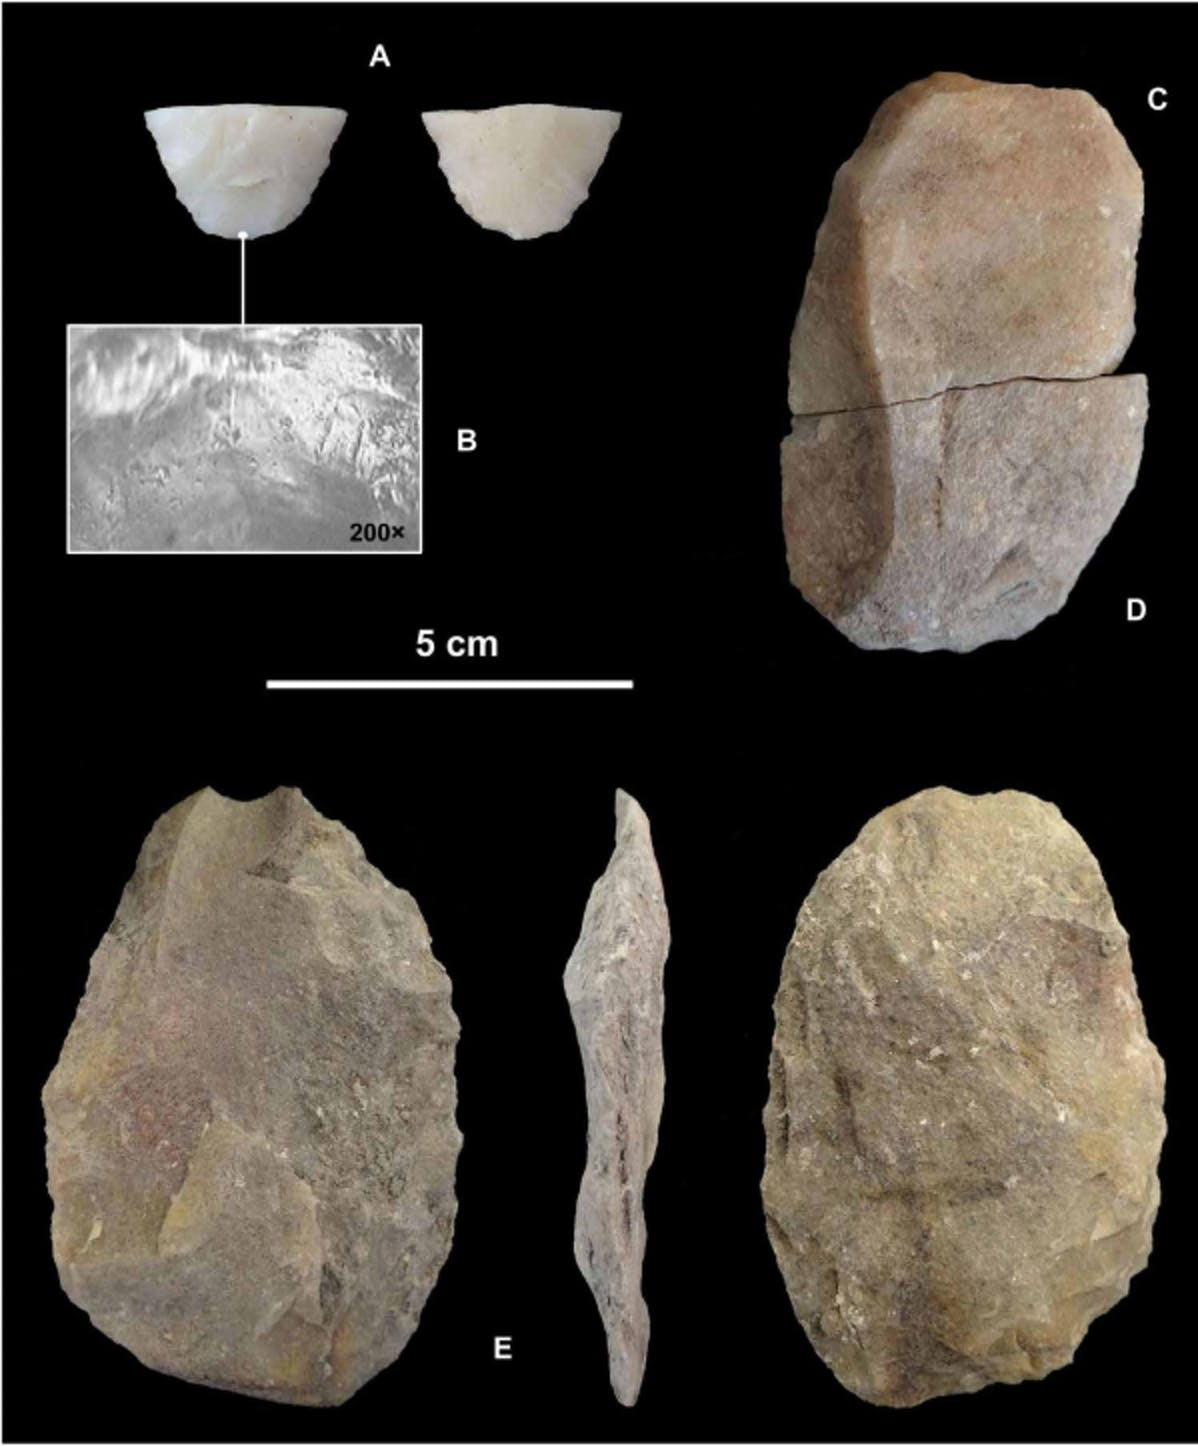 Archaeologists suspect these tools, found at Campo Laborde, were used to hunt the giant sloth, as evidenced by the broken projectile point (A).